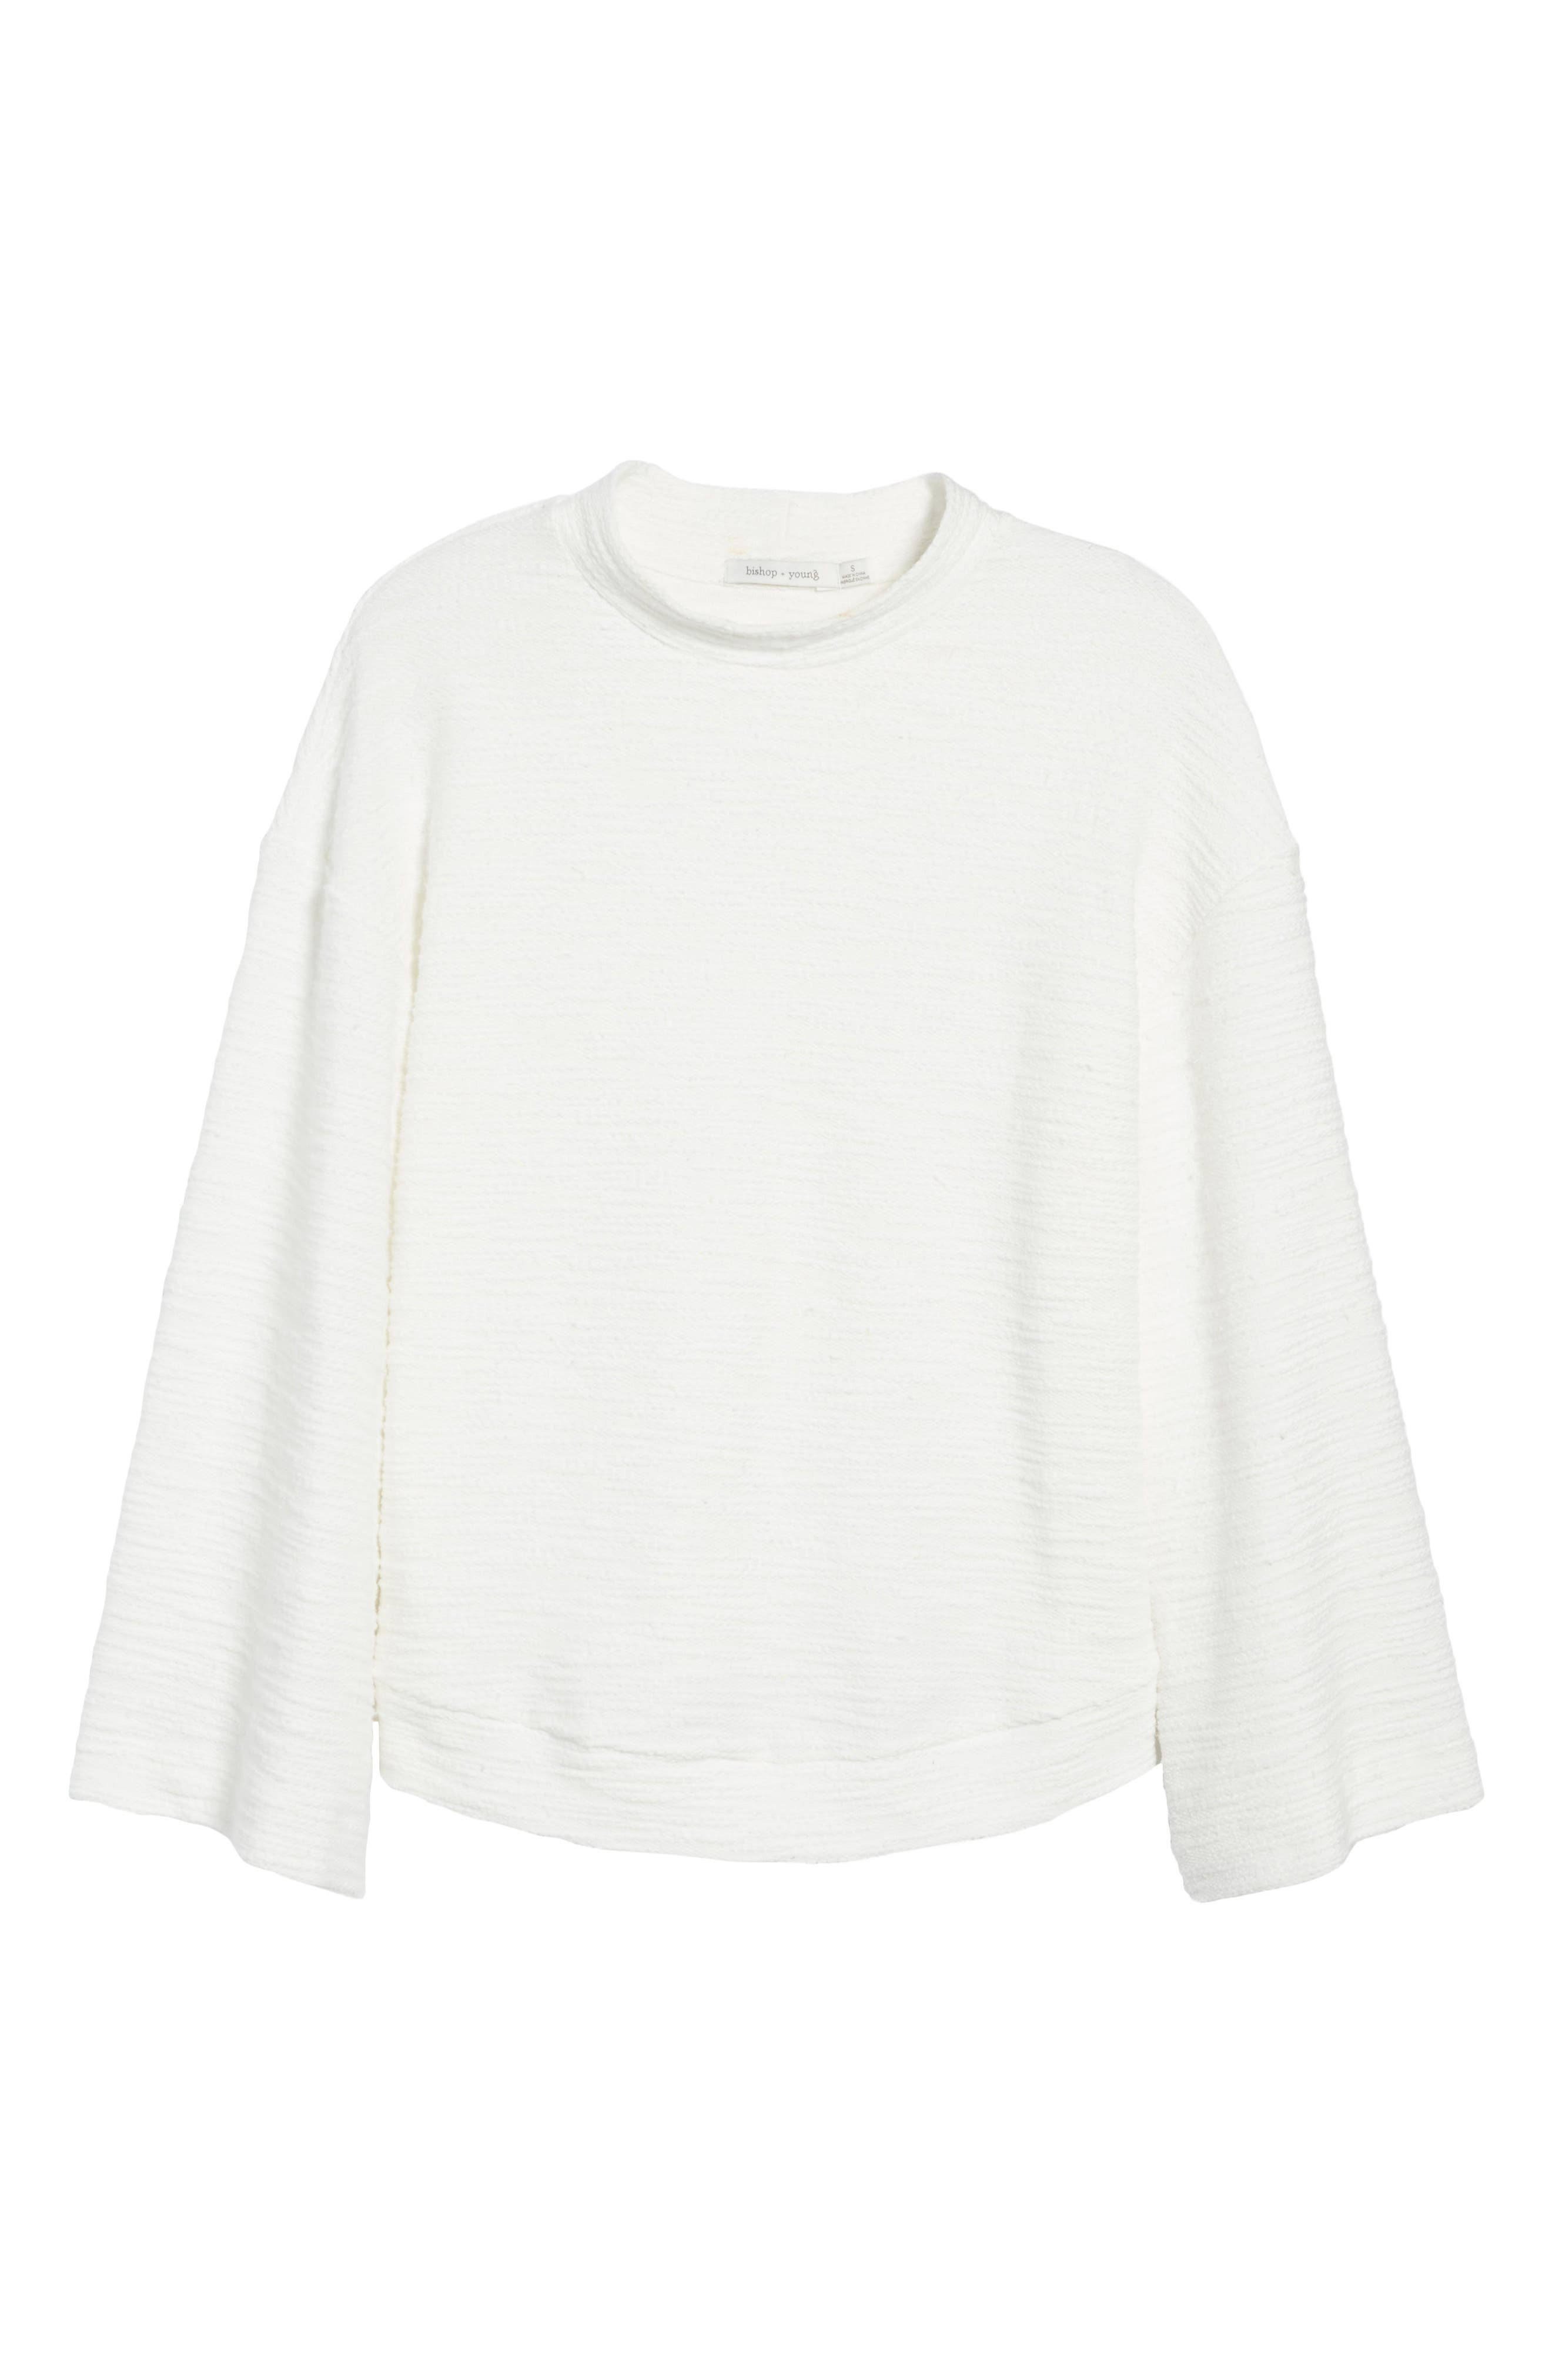 Bishop + Young No Sweat Pullover,                             Alternate thumbnail 6, color,                             Ivory